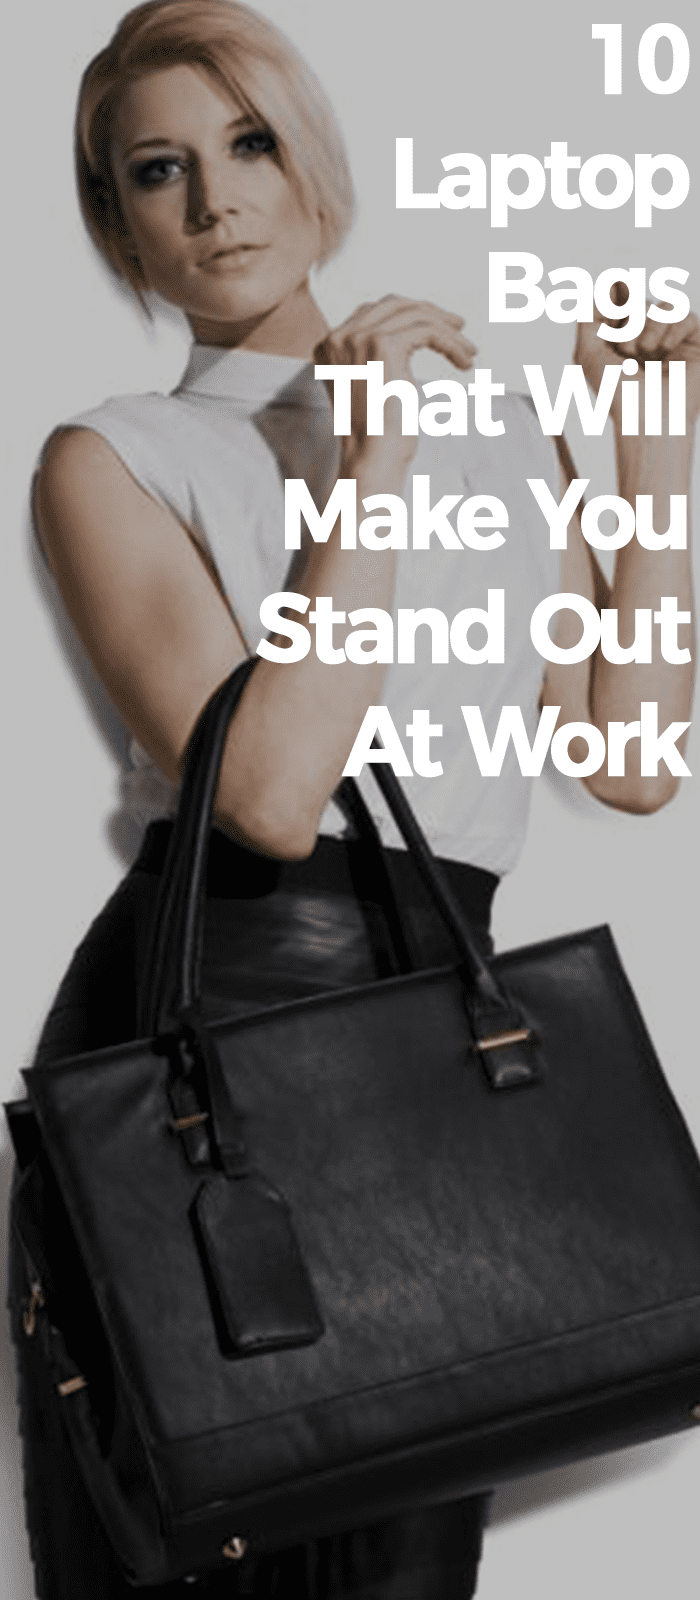 10 Laptop Bags That Will Make You Stand Out At Work.